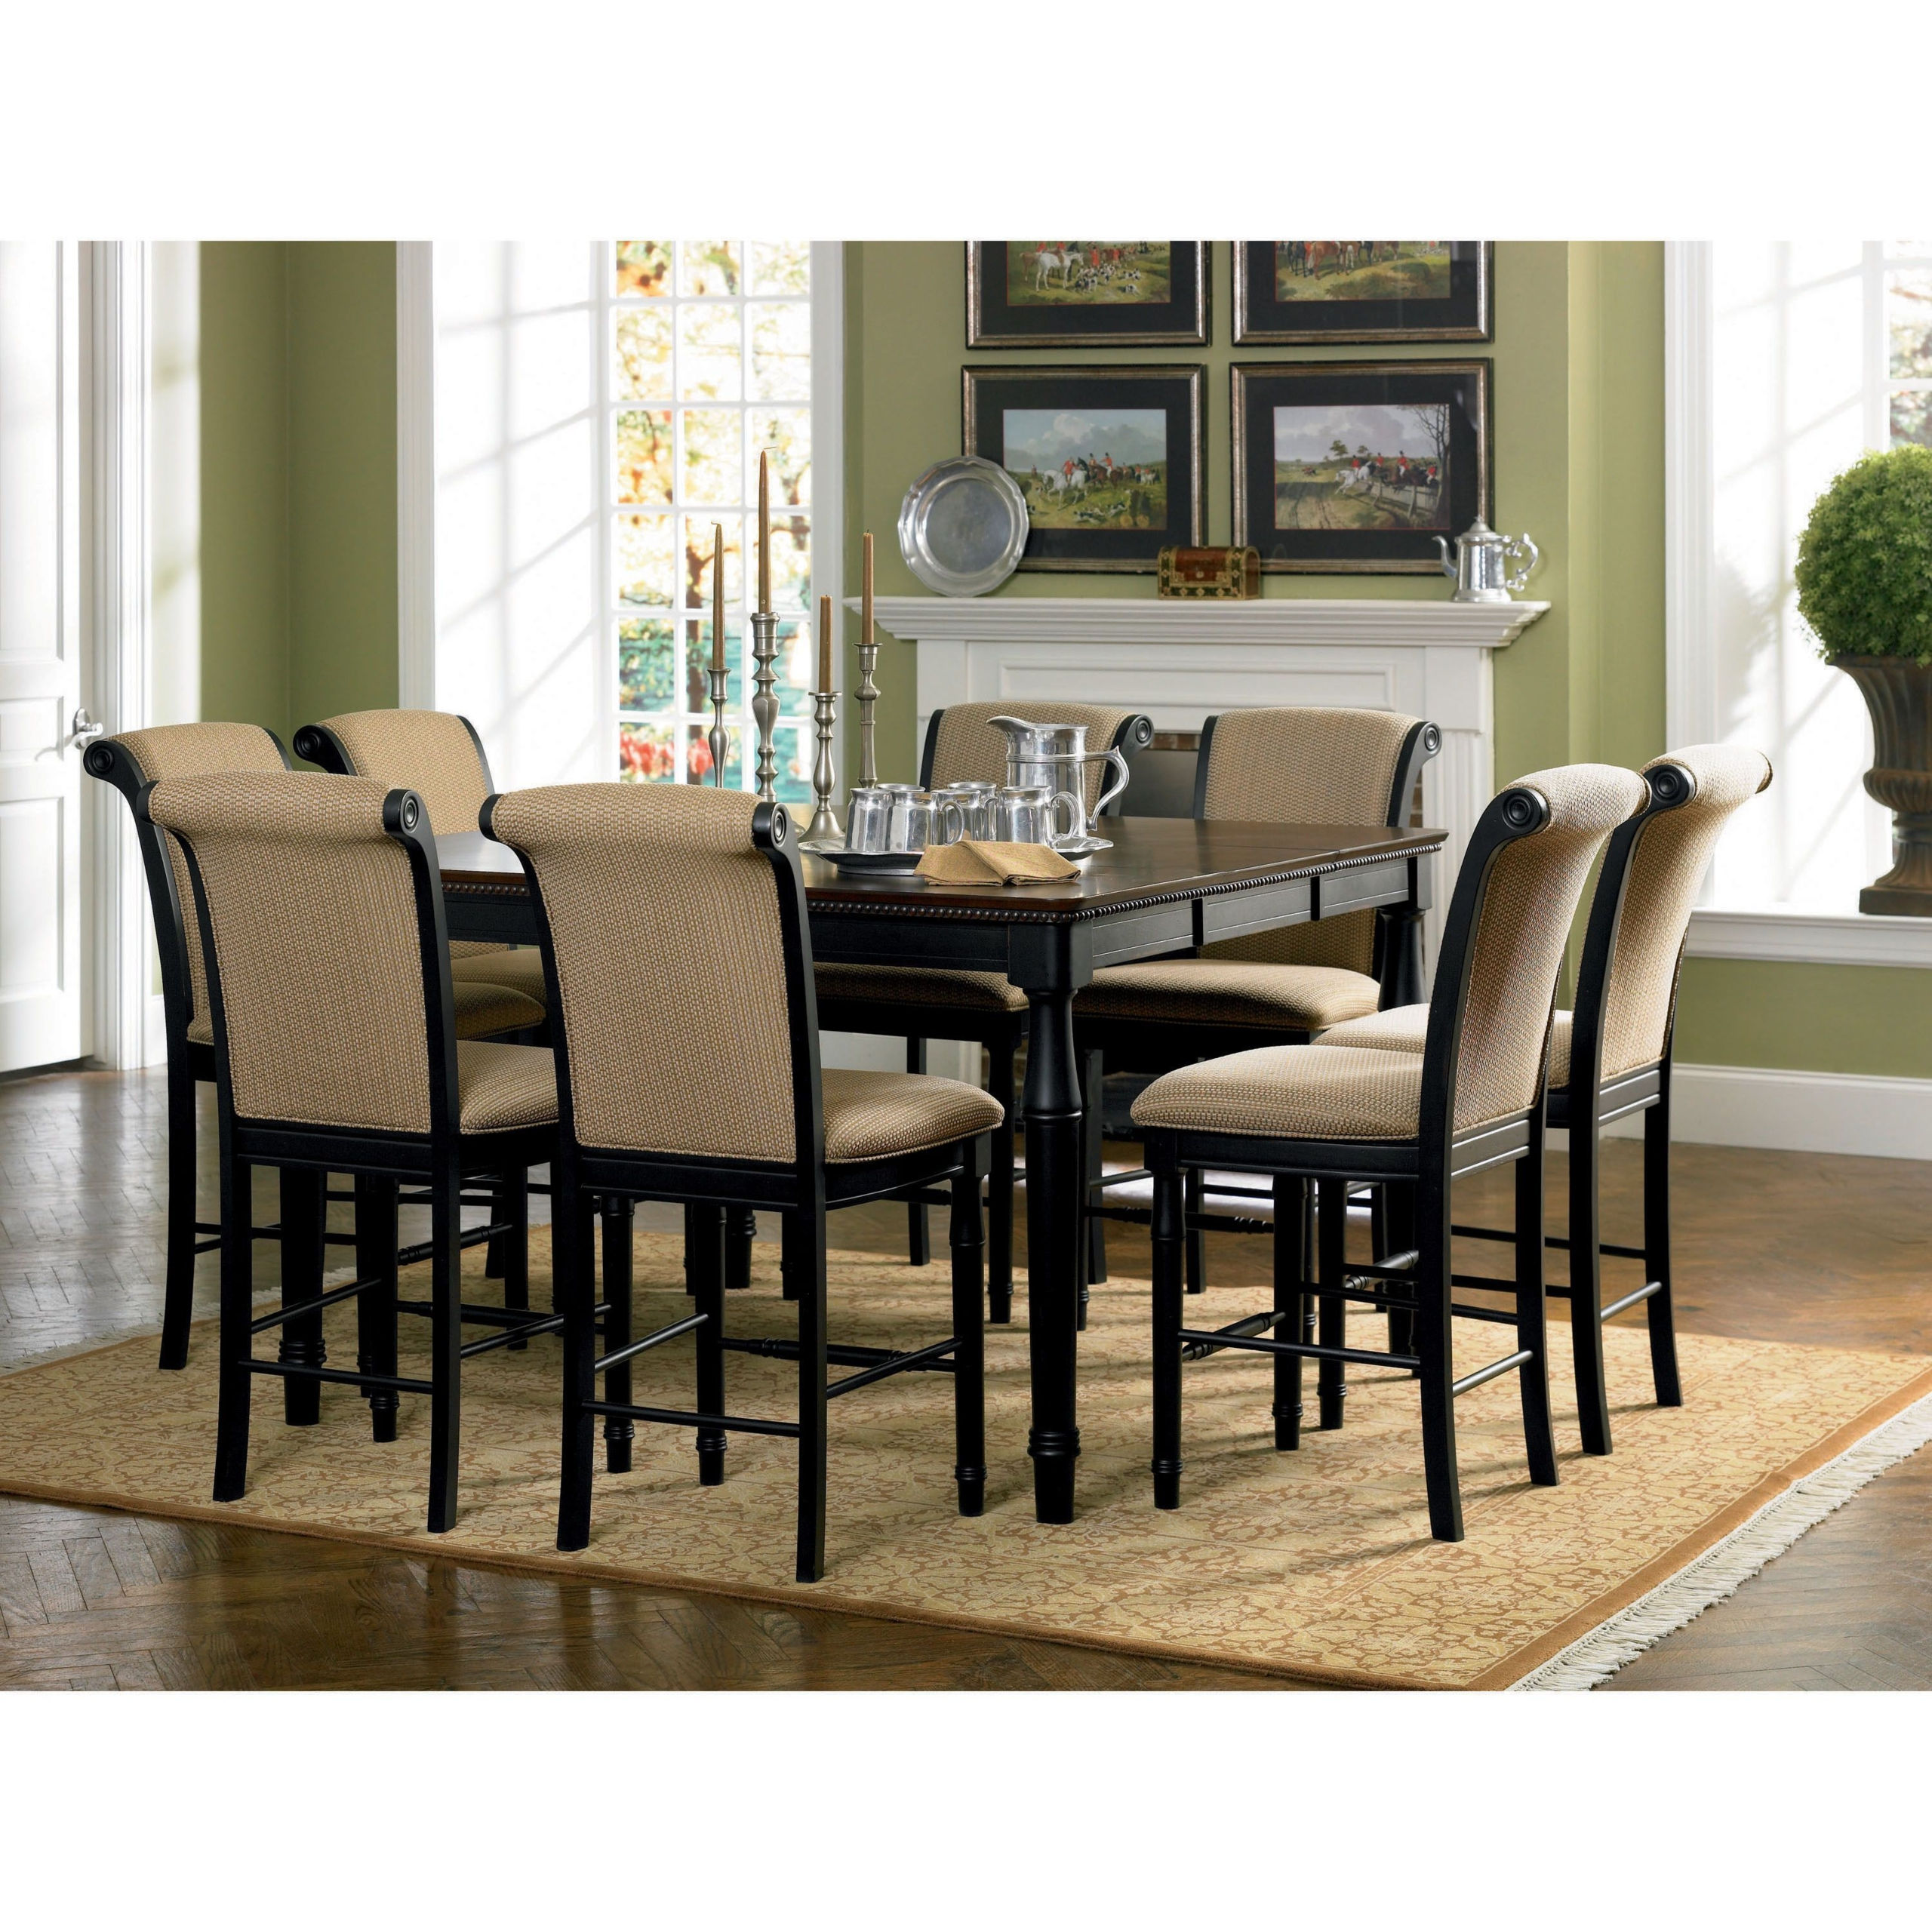 Round Bar Height Dining Table 1